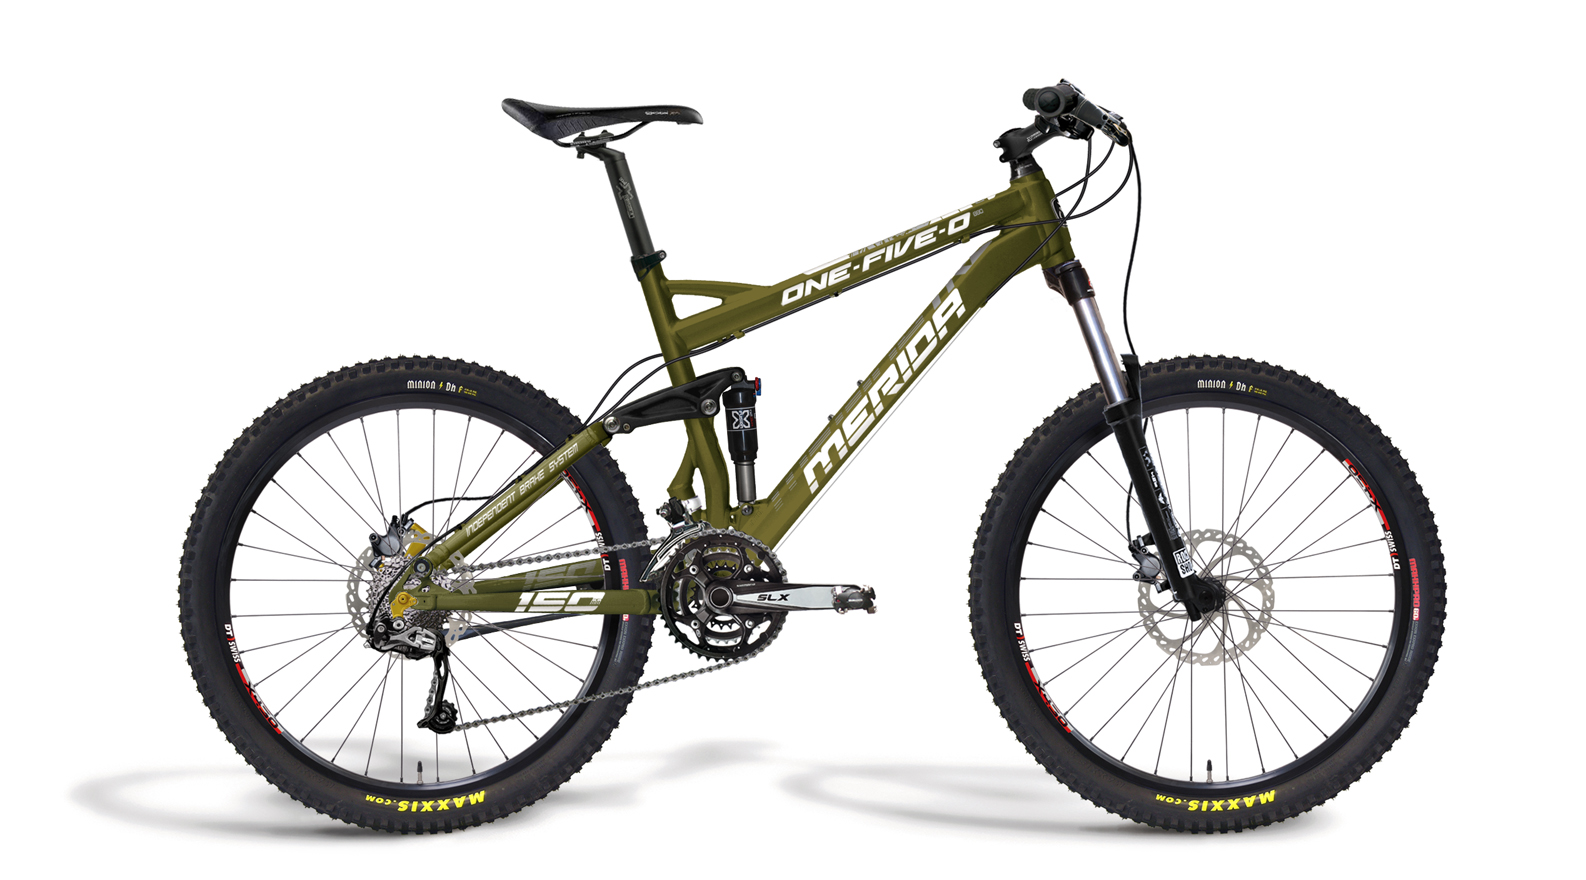 Full Suspension MTB - One Five O / MERIDA INDUSTRY CO., Ltd.